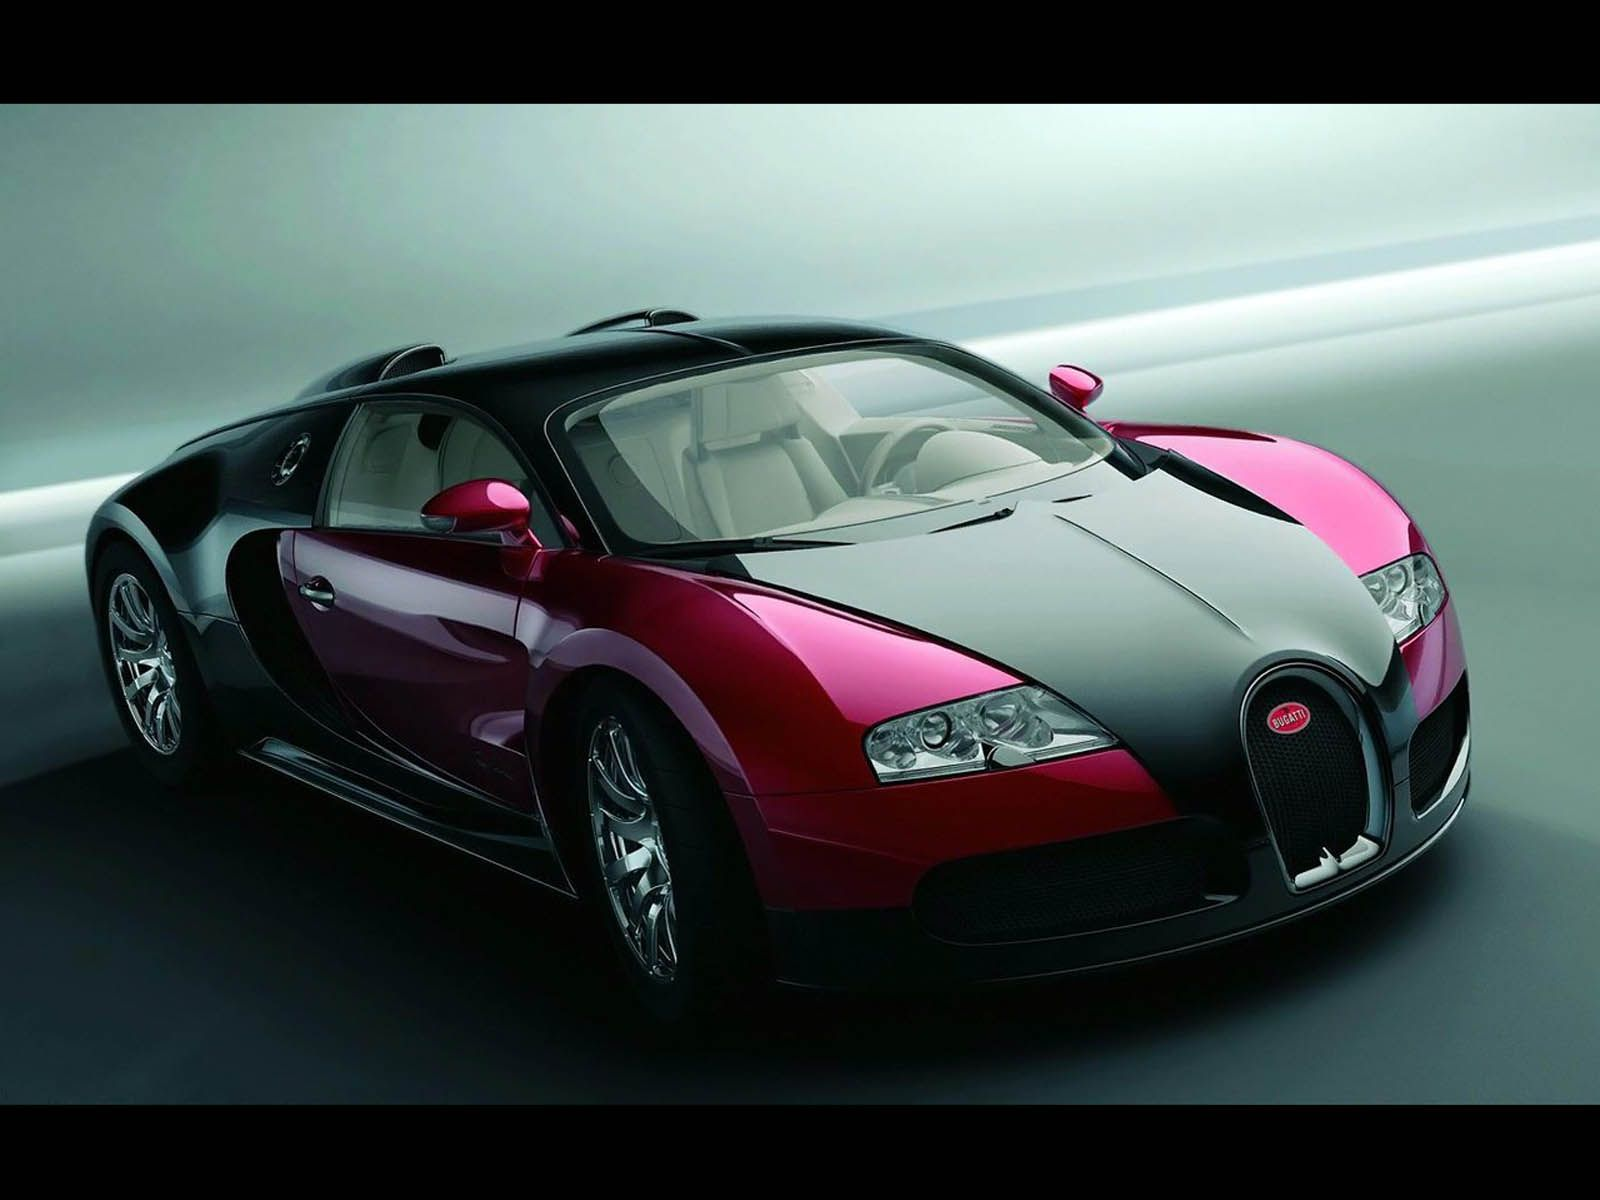 Bugatti Veyron Super Sports Was Known For Being Most Expensive Car On The Market Until The Lamborghini Veneno Has Been Unveiled At Geneva Motor Show